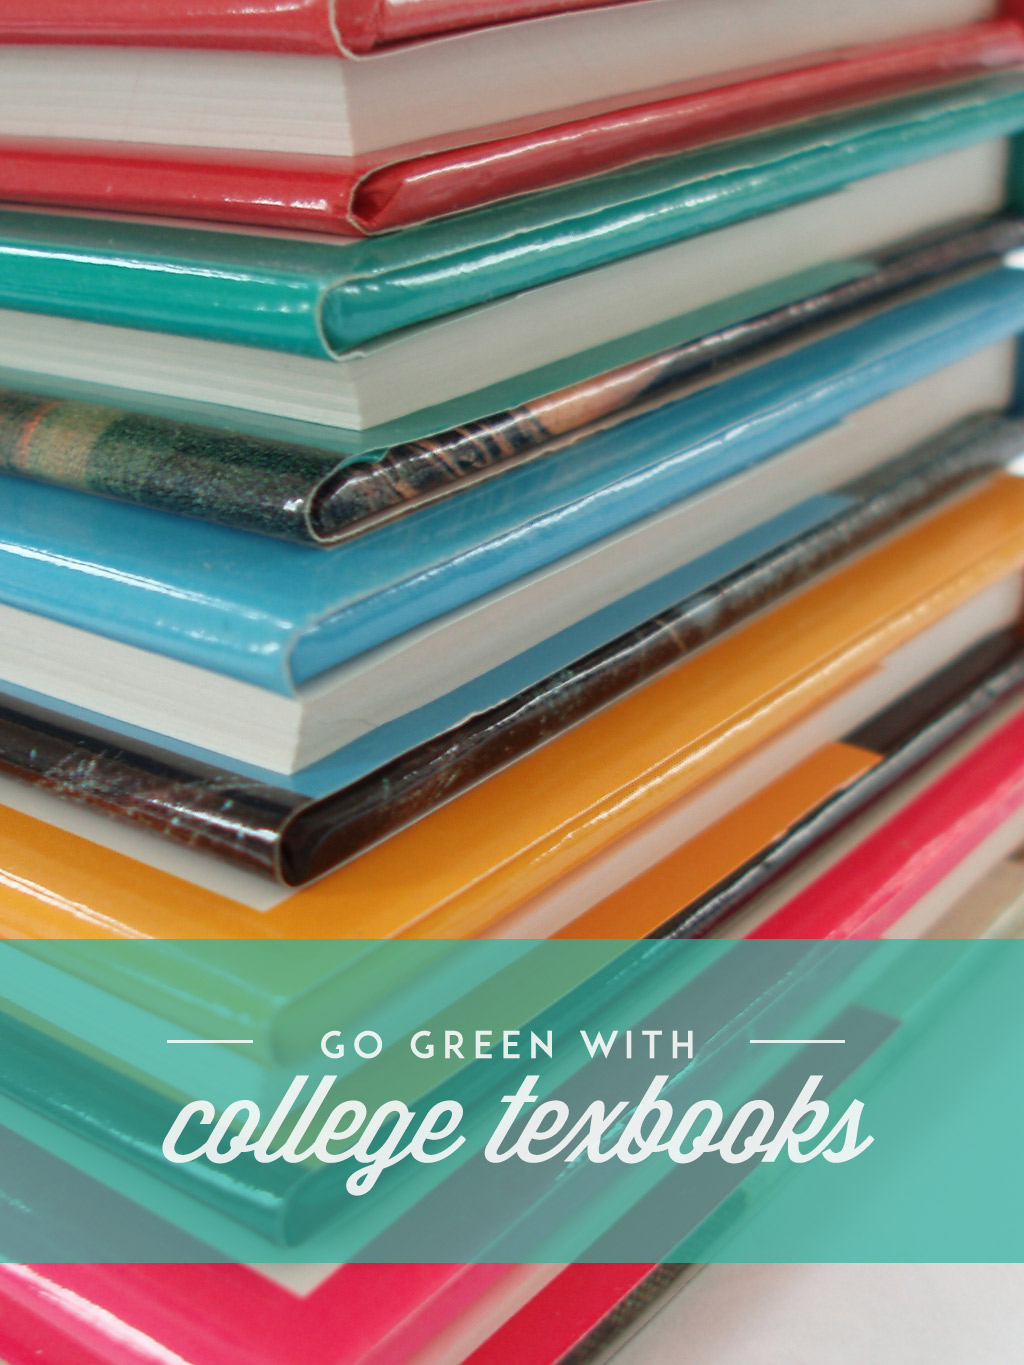 How to Go Green with College Textbooks